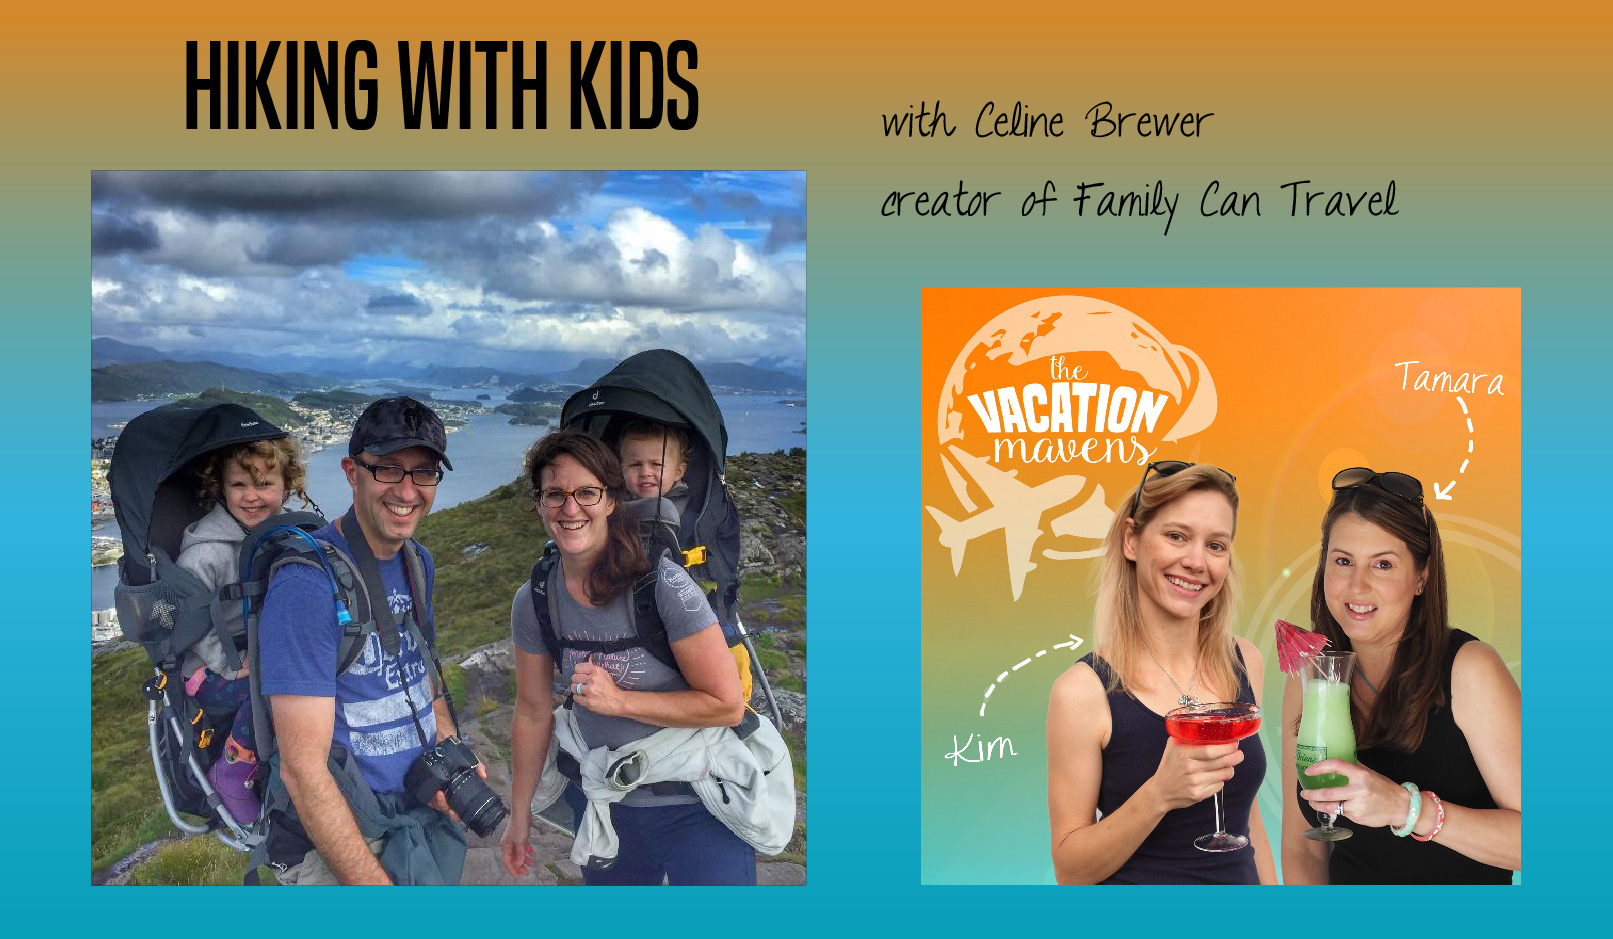 Celine Brewer hiking with kids podcast episode